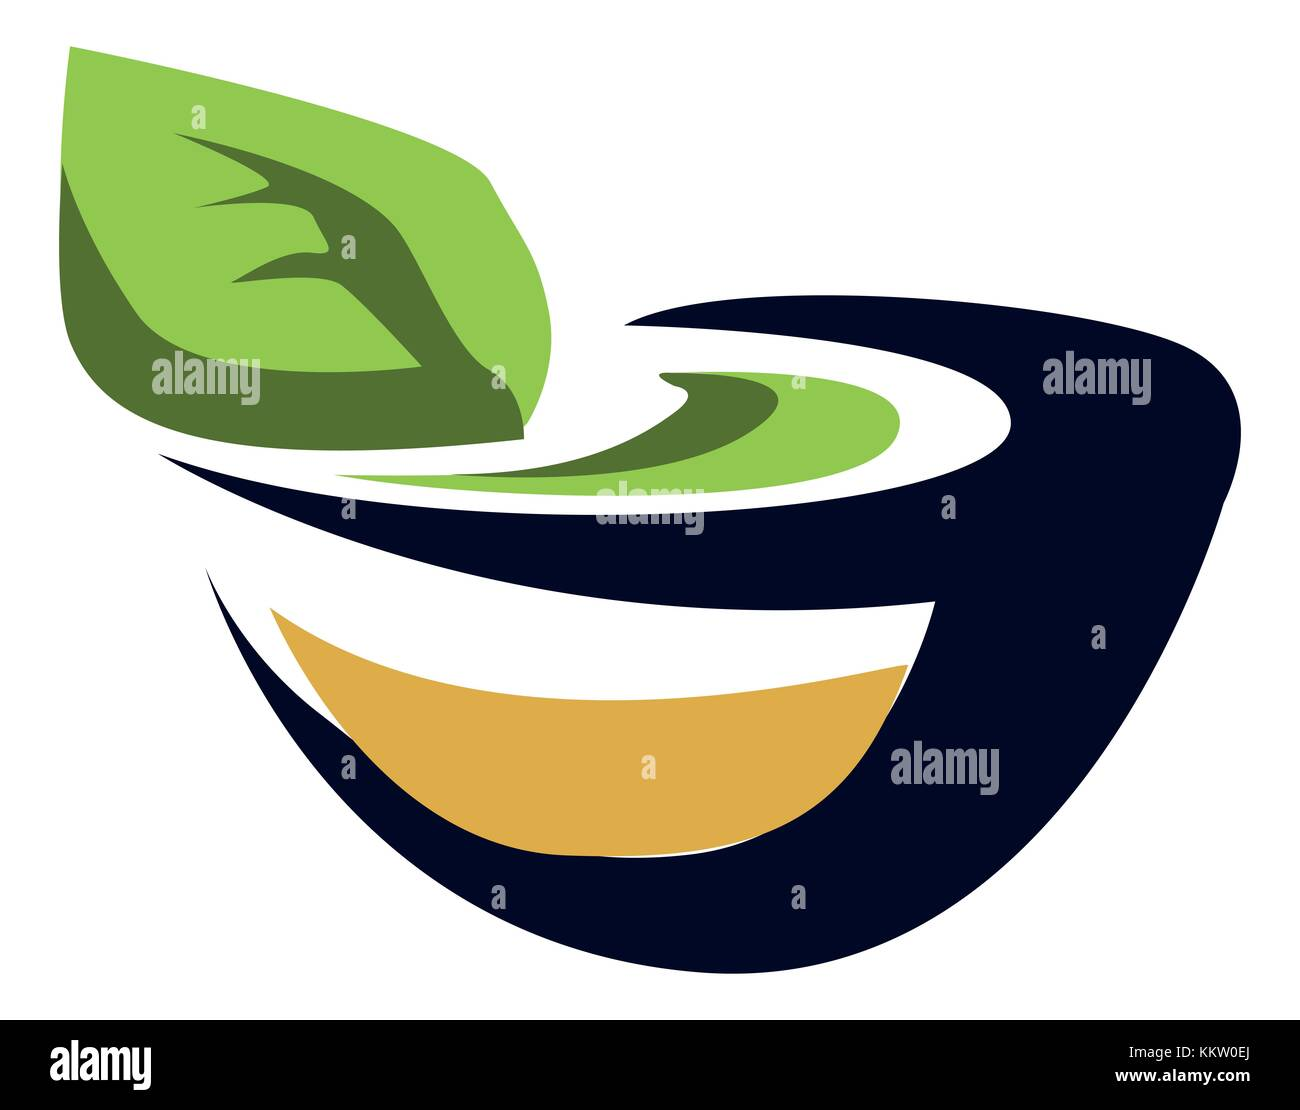 Cooking clipart stock photos cooking clipart stock images alamy internet icons clipart stock image biocorpaavc